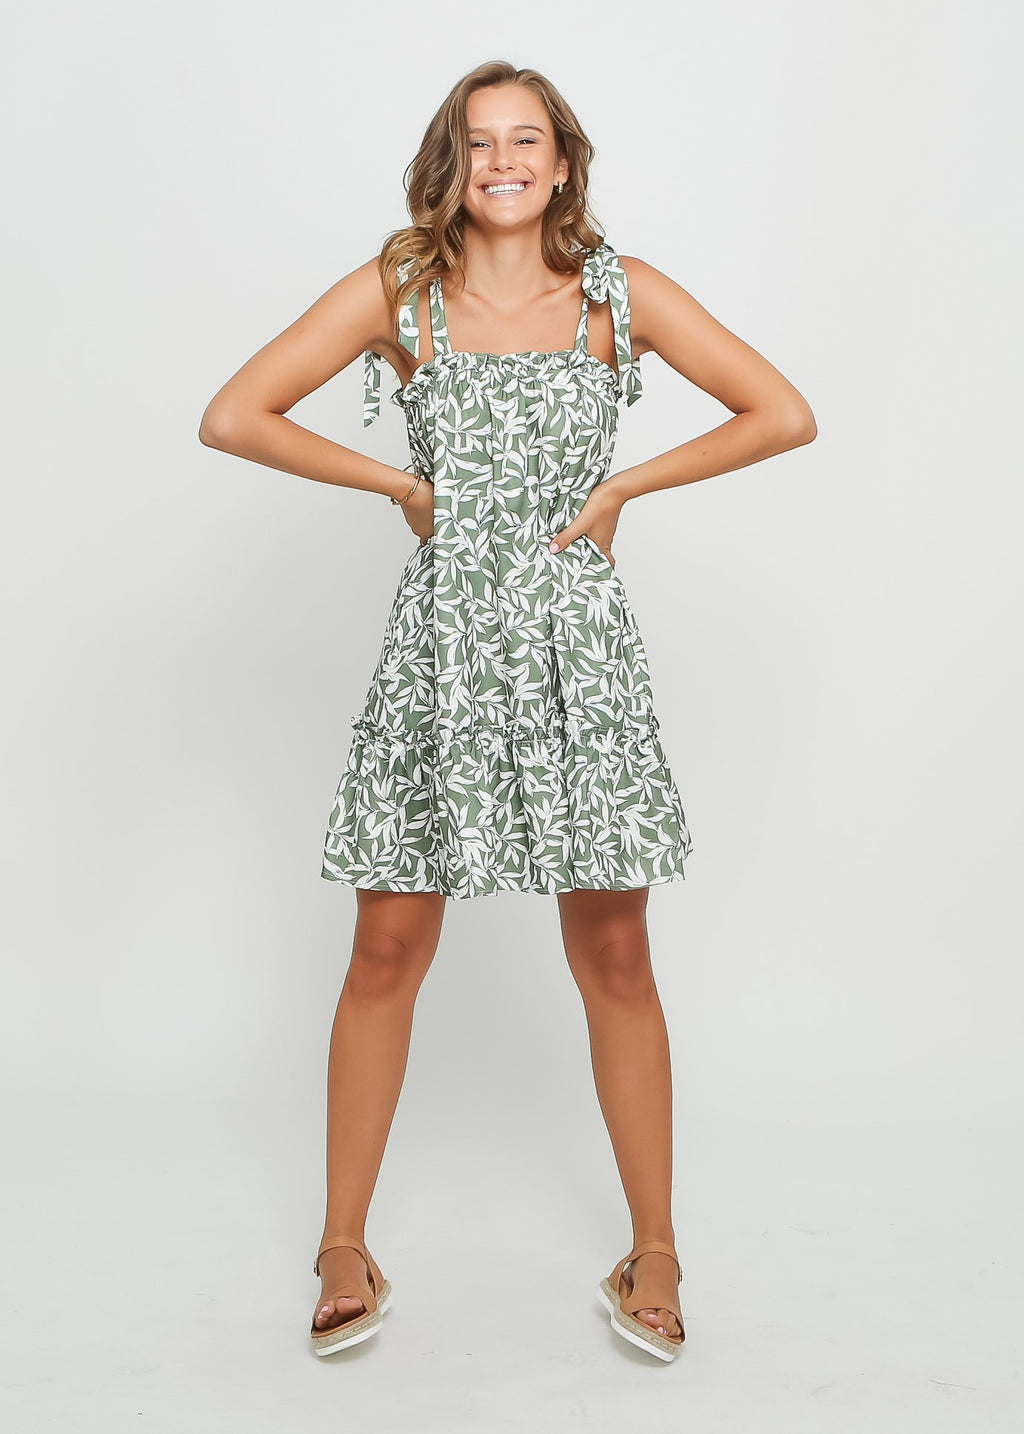 SOFIA DRESS - GREEN LEAF